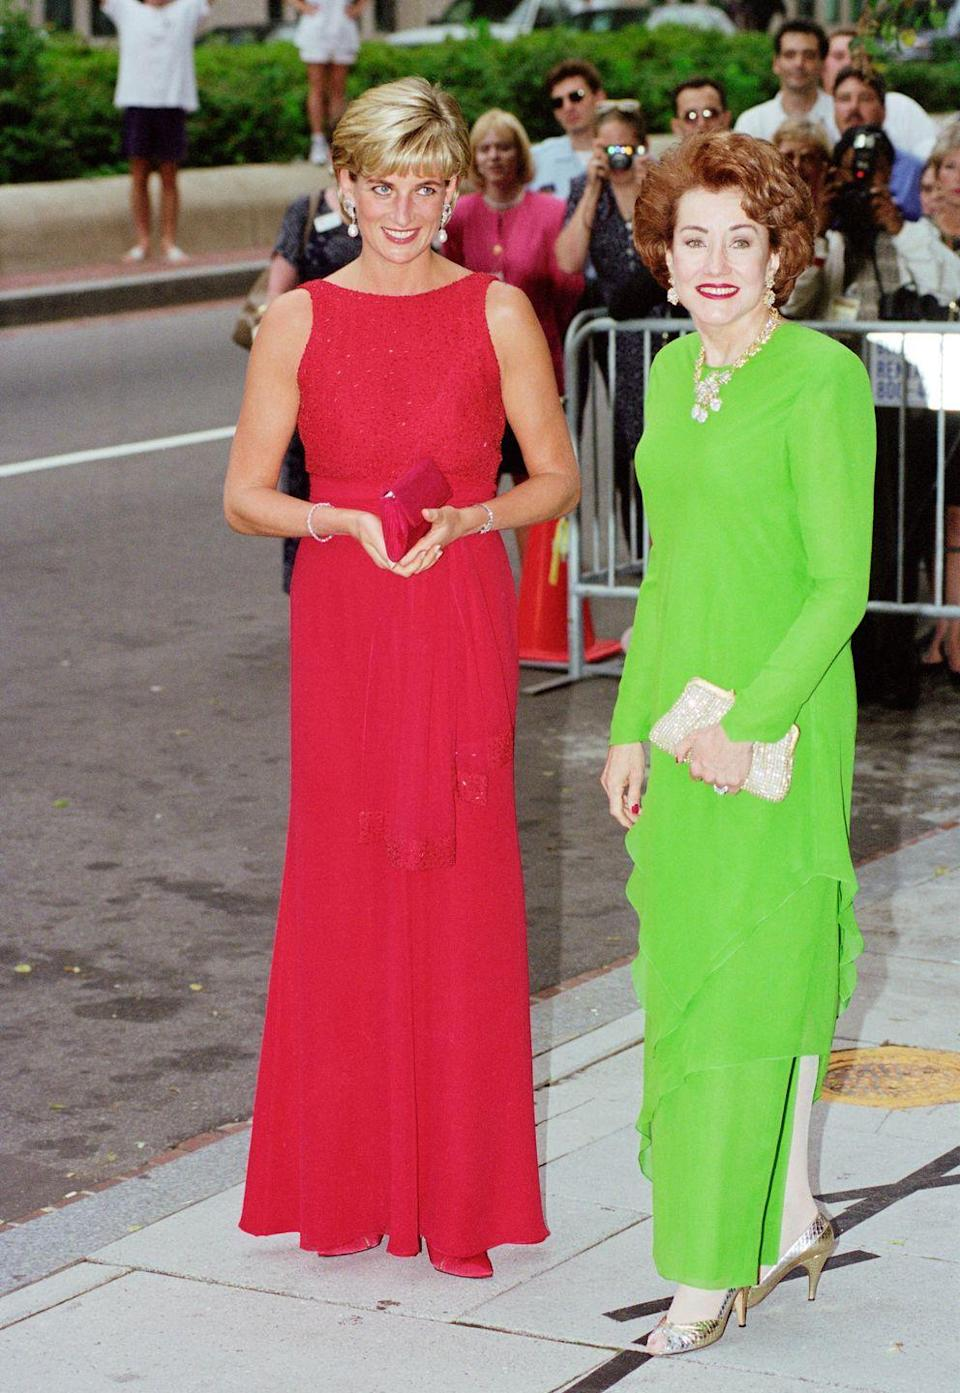 <p>In a battle of bold colors, United States congresswoman Elizabeth Dole wore a lime green chiffon gown, while Princess Diana rocked a sleeveless red design. The Princess was in the United States to attend a fundraising gala for the American Red Cross in Washington D.C. </p>